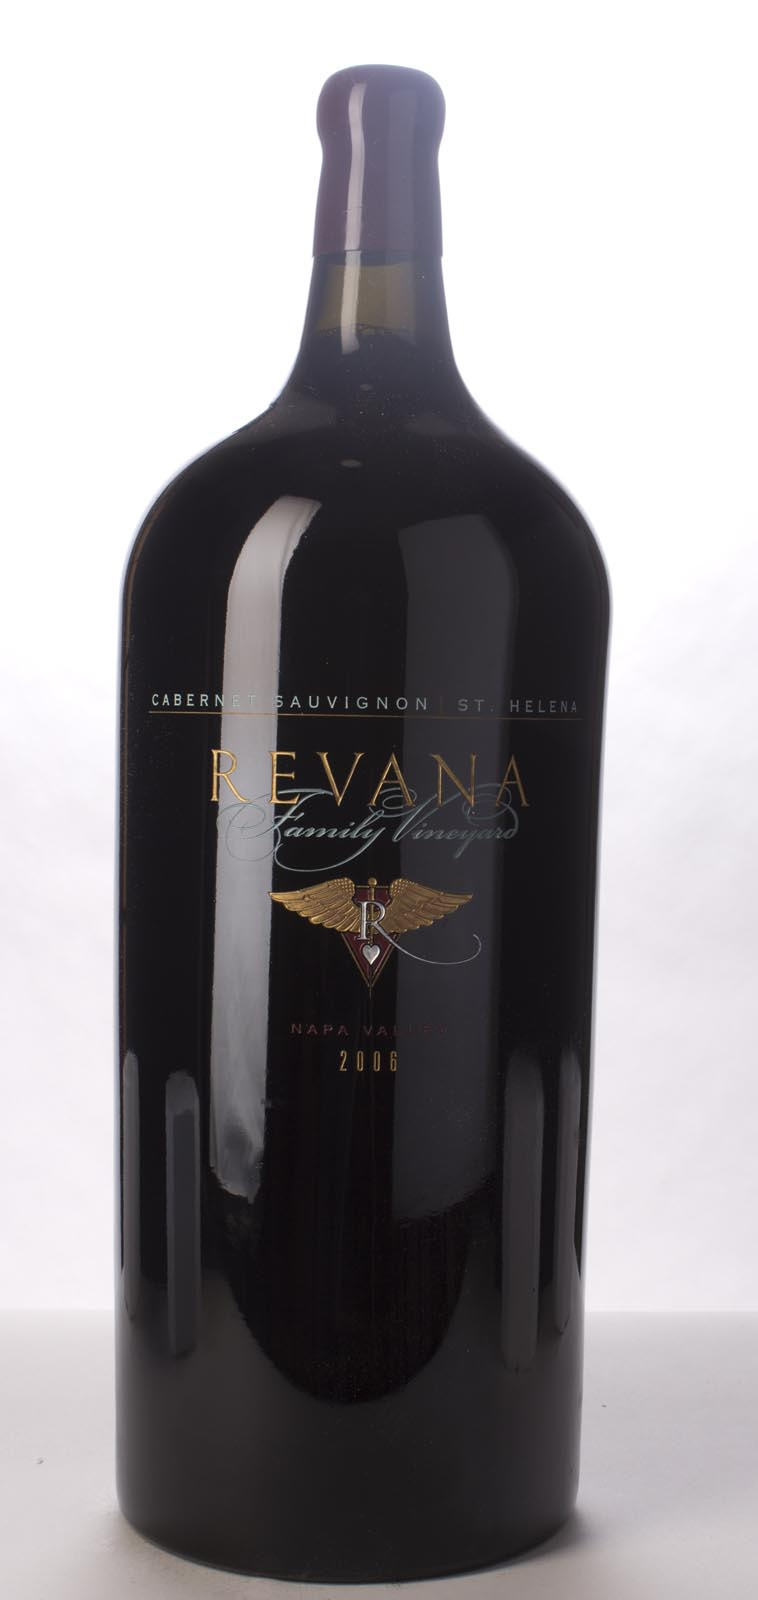 Revana Family Vineyard Cabernet Sauvignon 2006, 9L () from The BPW - Merchants of rare and fine wines.